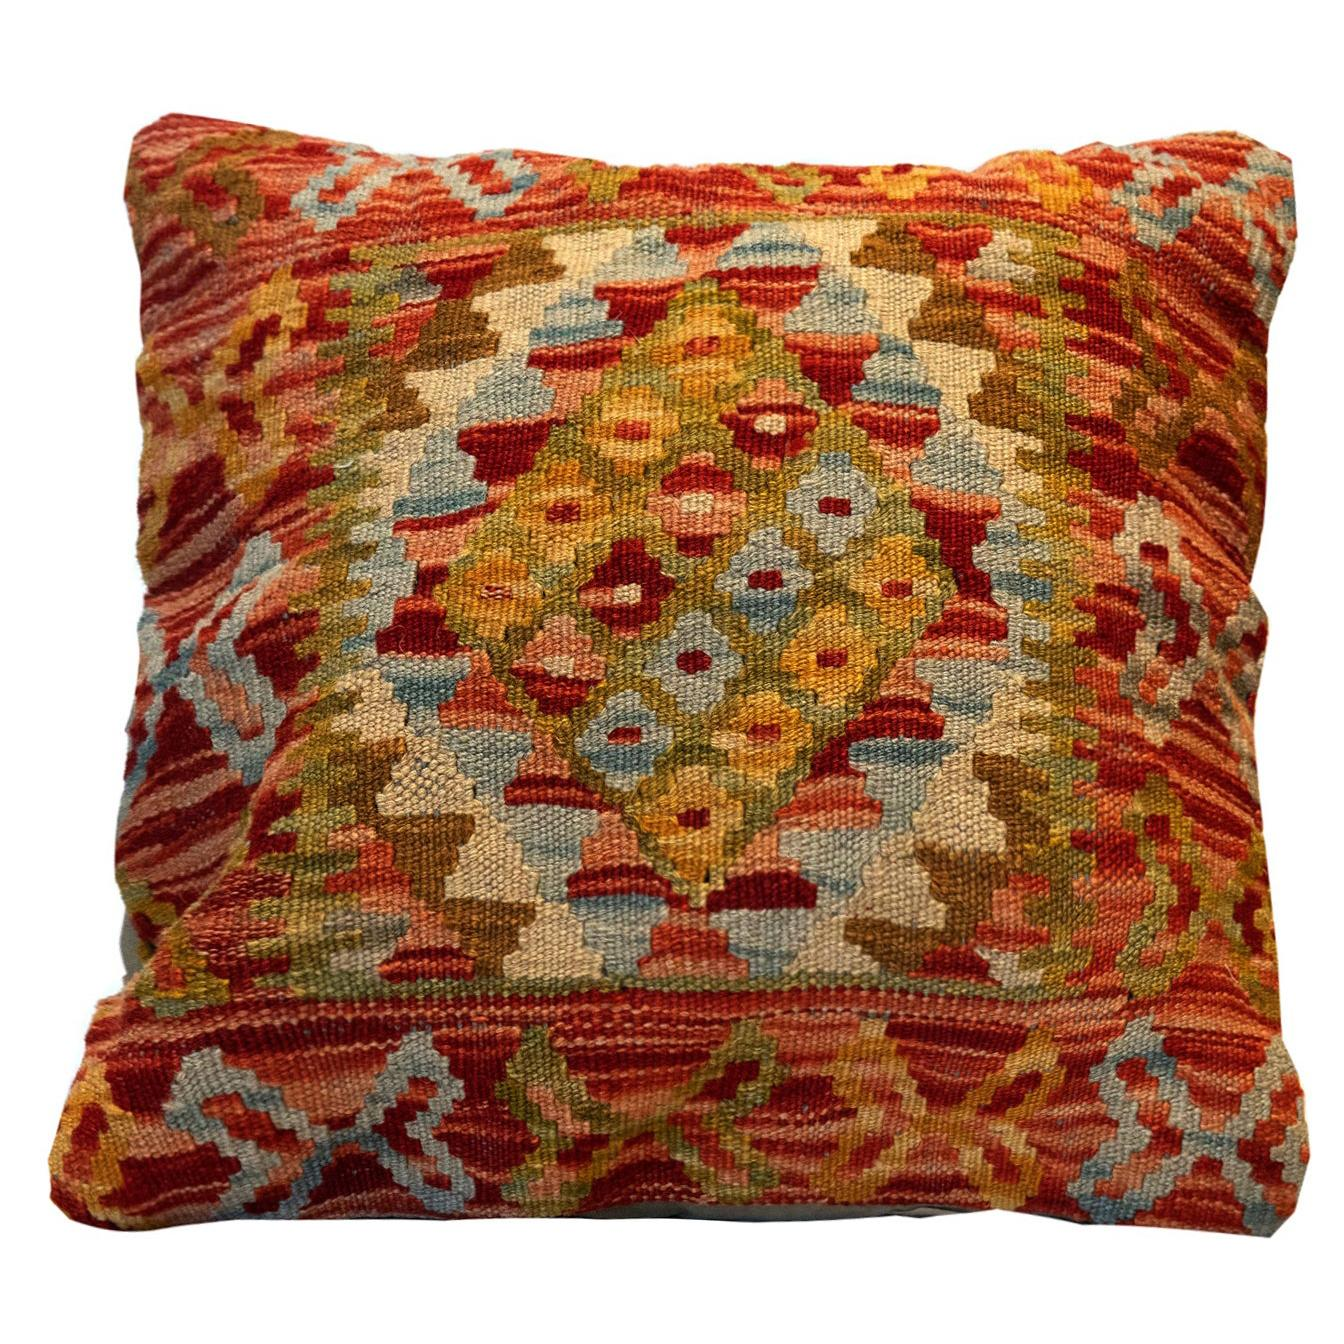 Handwoven Kilim Cushion Cover Orange Red Wool Scatter Pillow Case